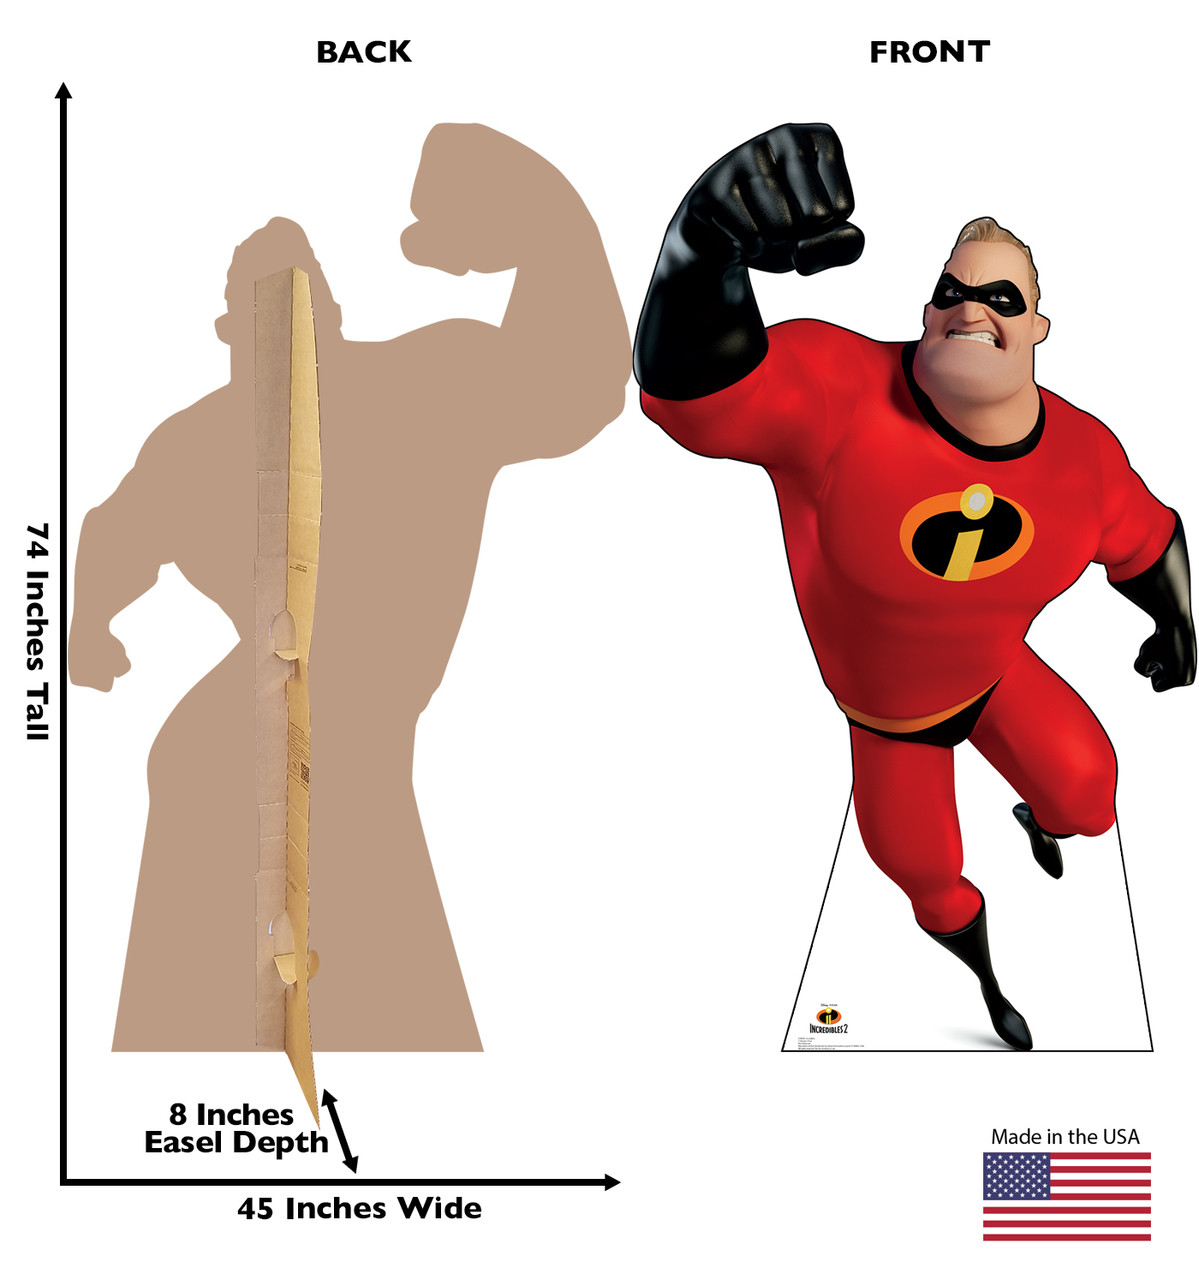 Mr. Incredible Life-size cardboard standee back and front with dimensions.